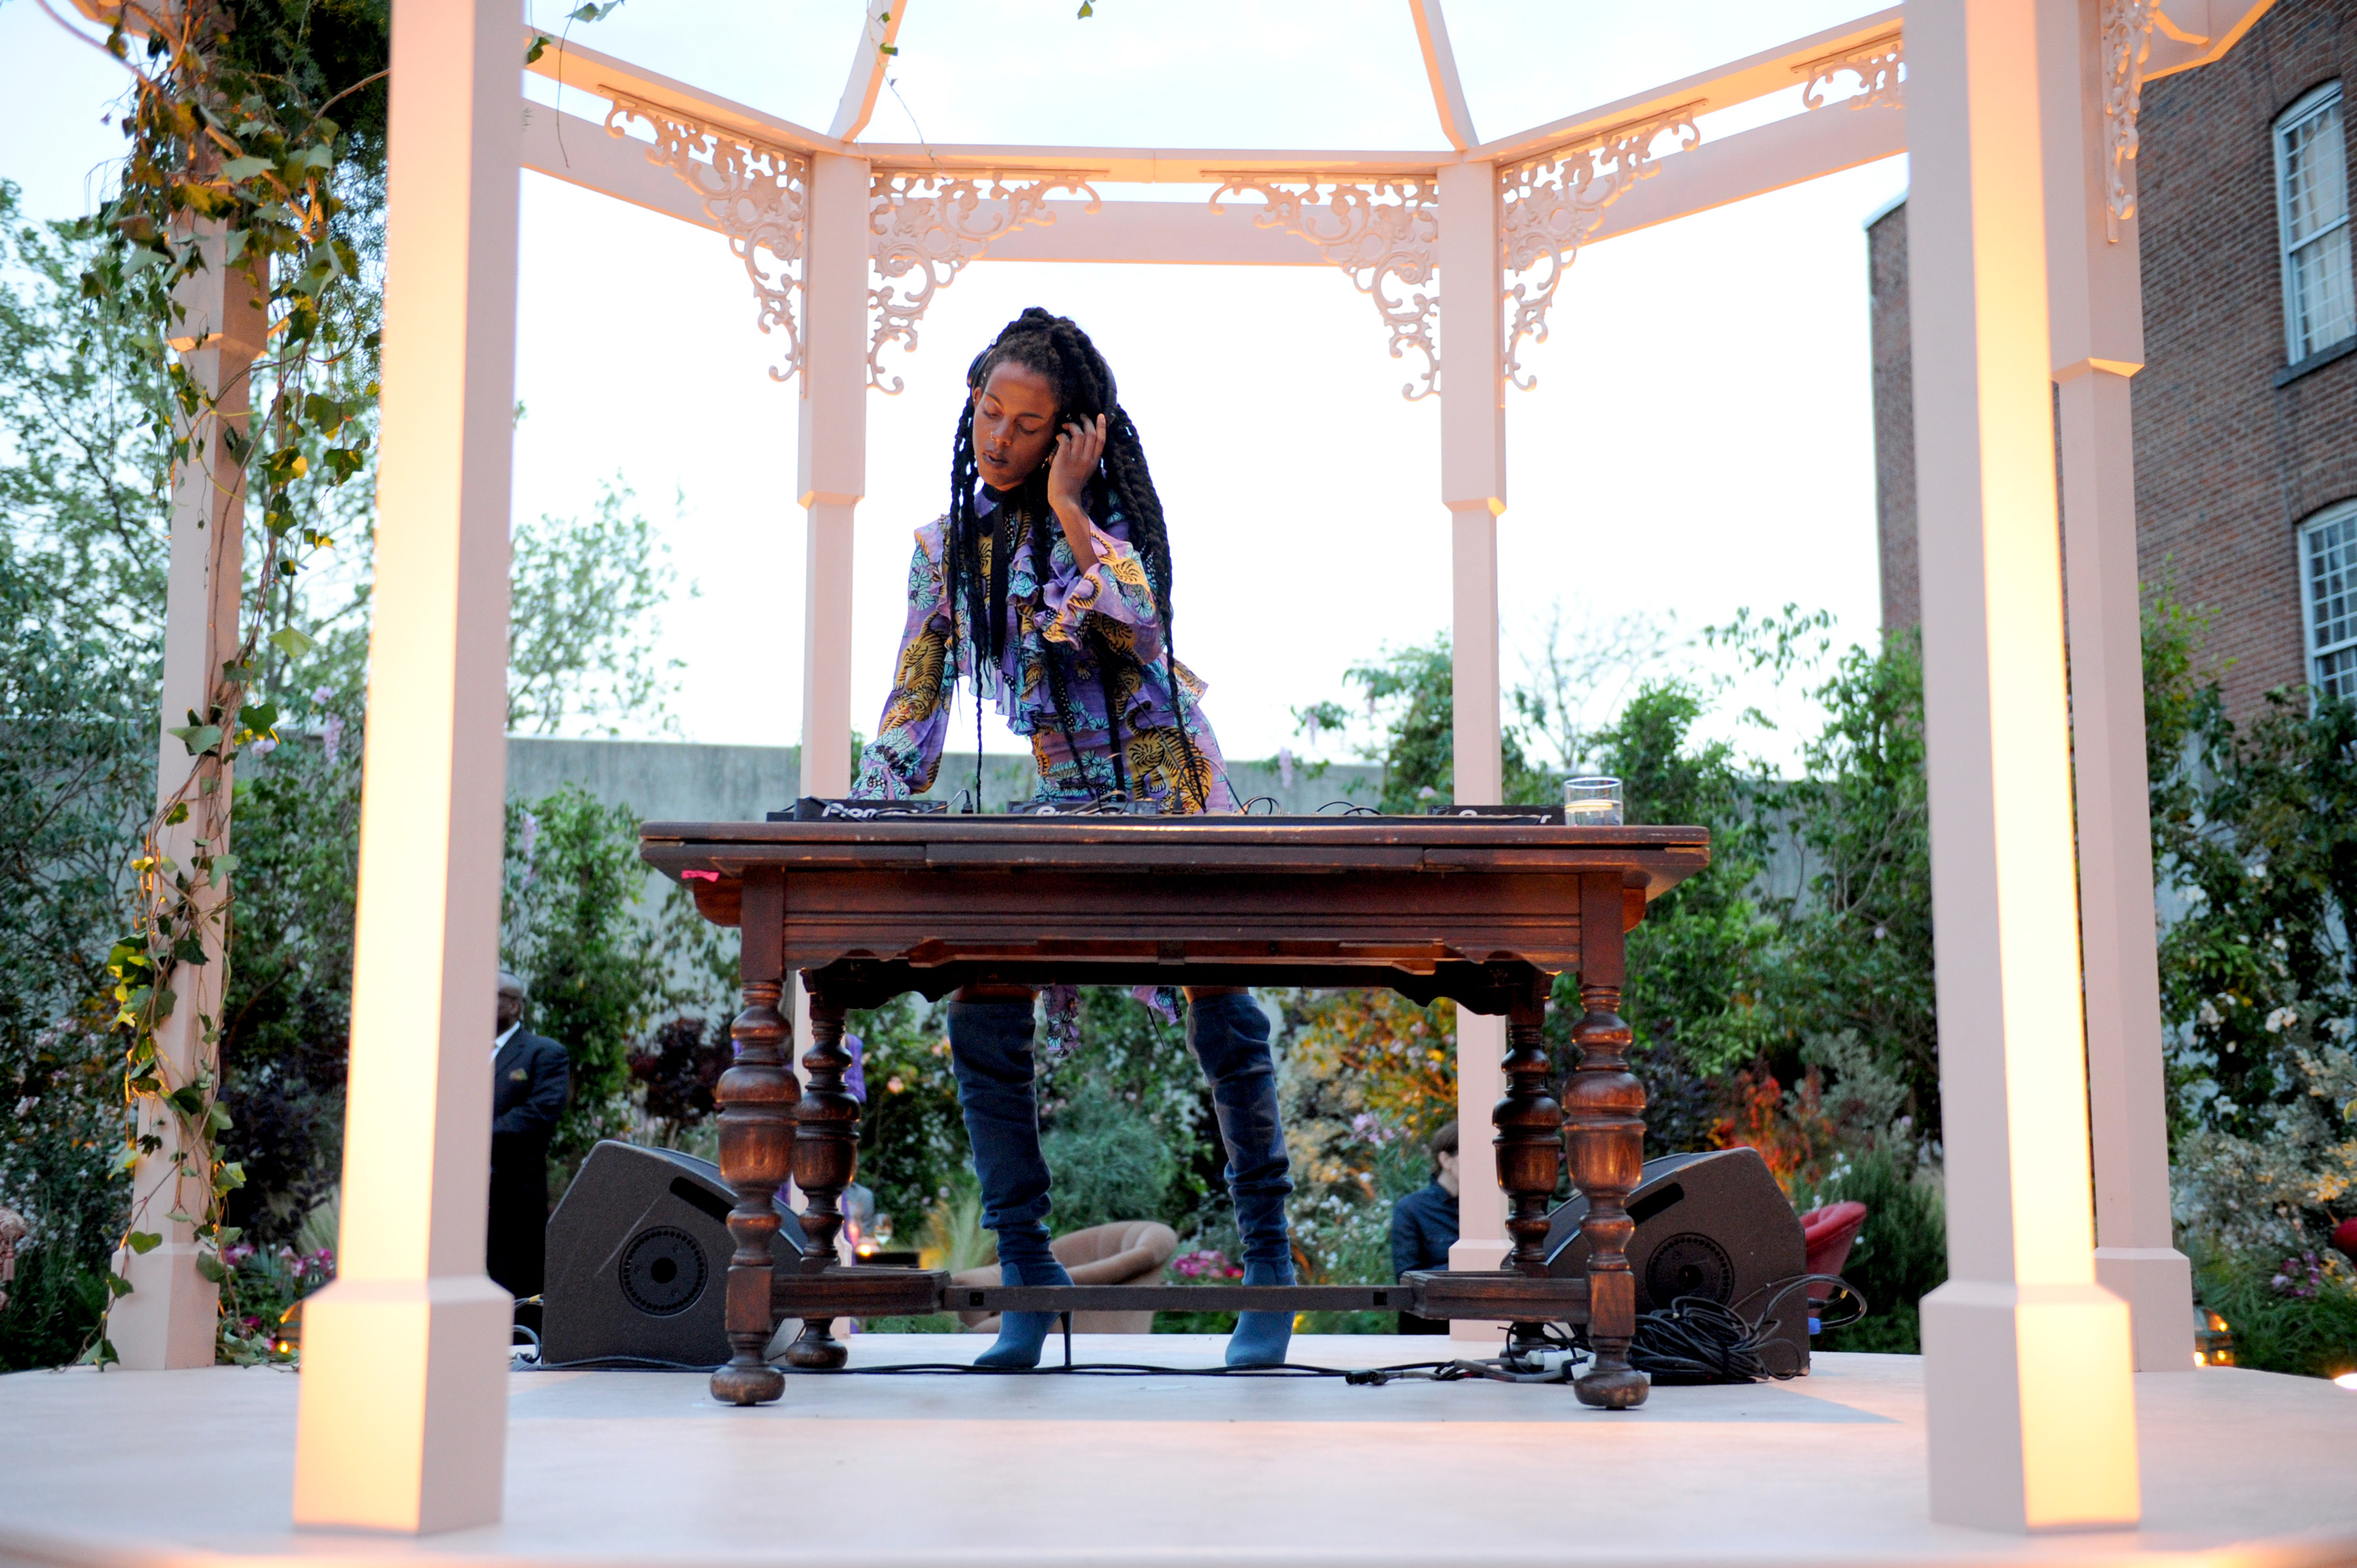 NEW YORK, NY - MAY 02: DJ Juliana performs onstage at the Gucci Bloom Fragrance Launch at MoMA PS.1 on May 2, 2017 in New York City. (Photo by Craig Barritt/Getty Images for Gucci)